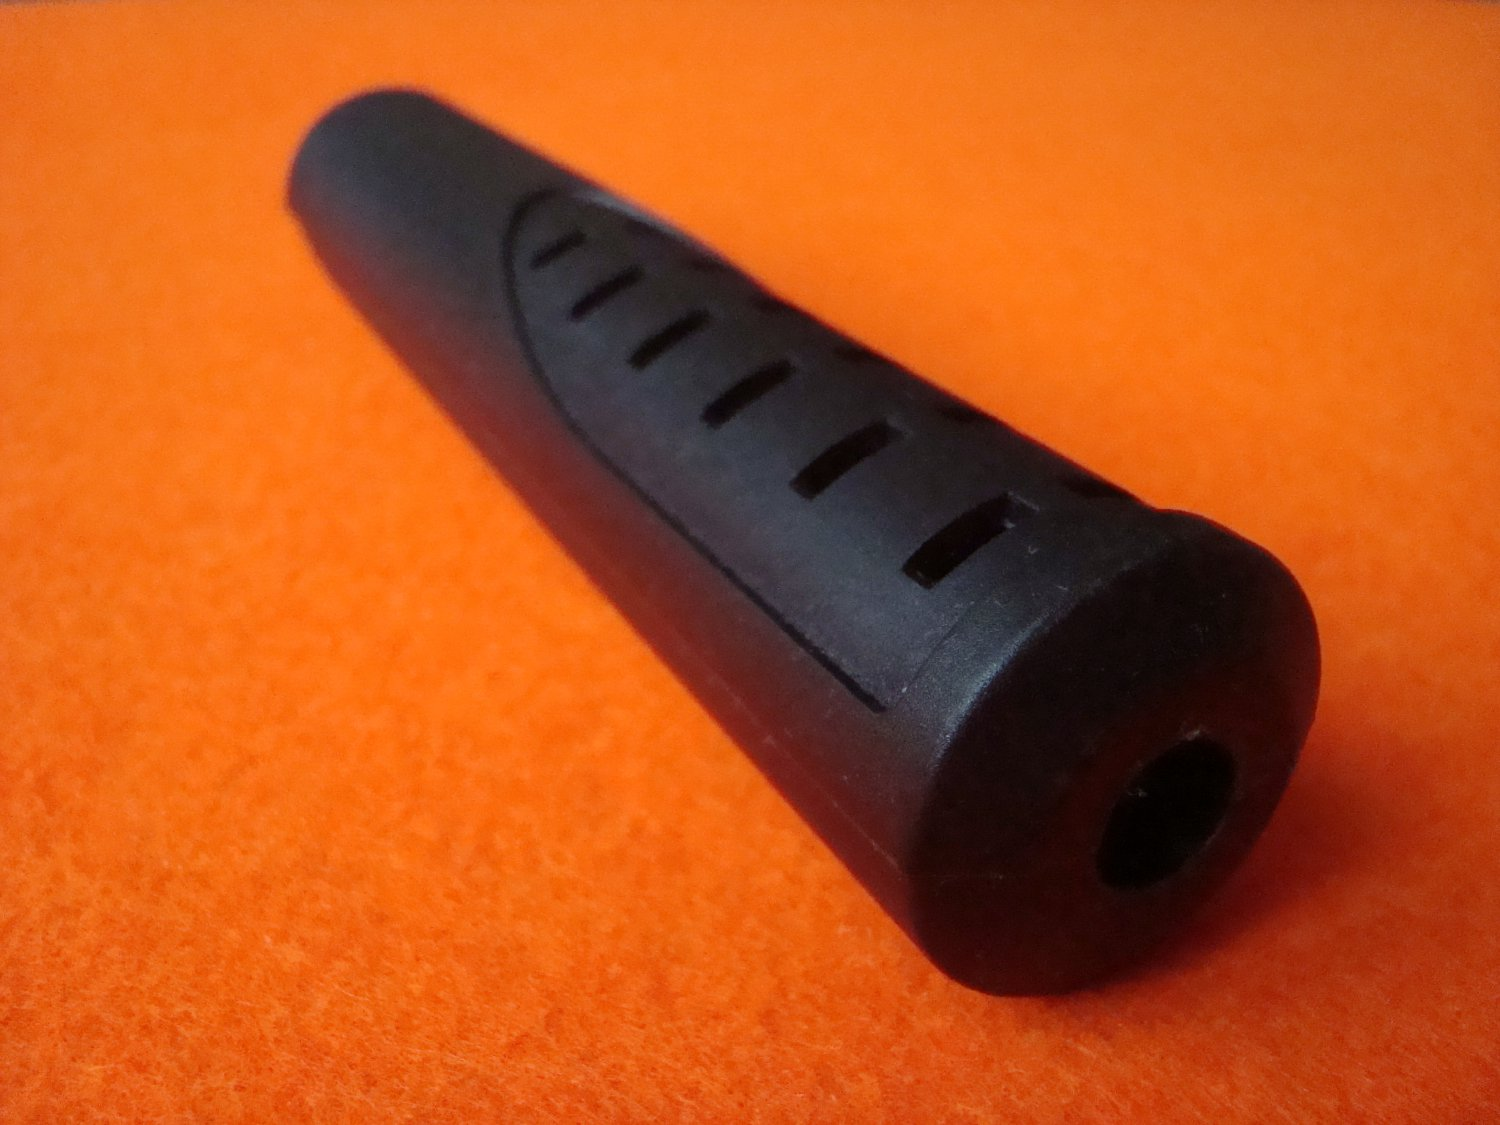 Muzzle MP-661K Blackbird with fixing screw for tuning appearance, modernization detail made to order